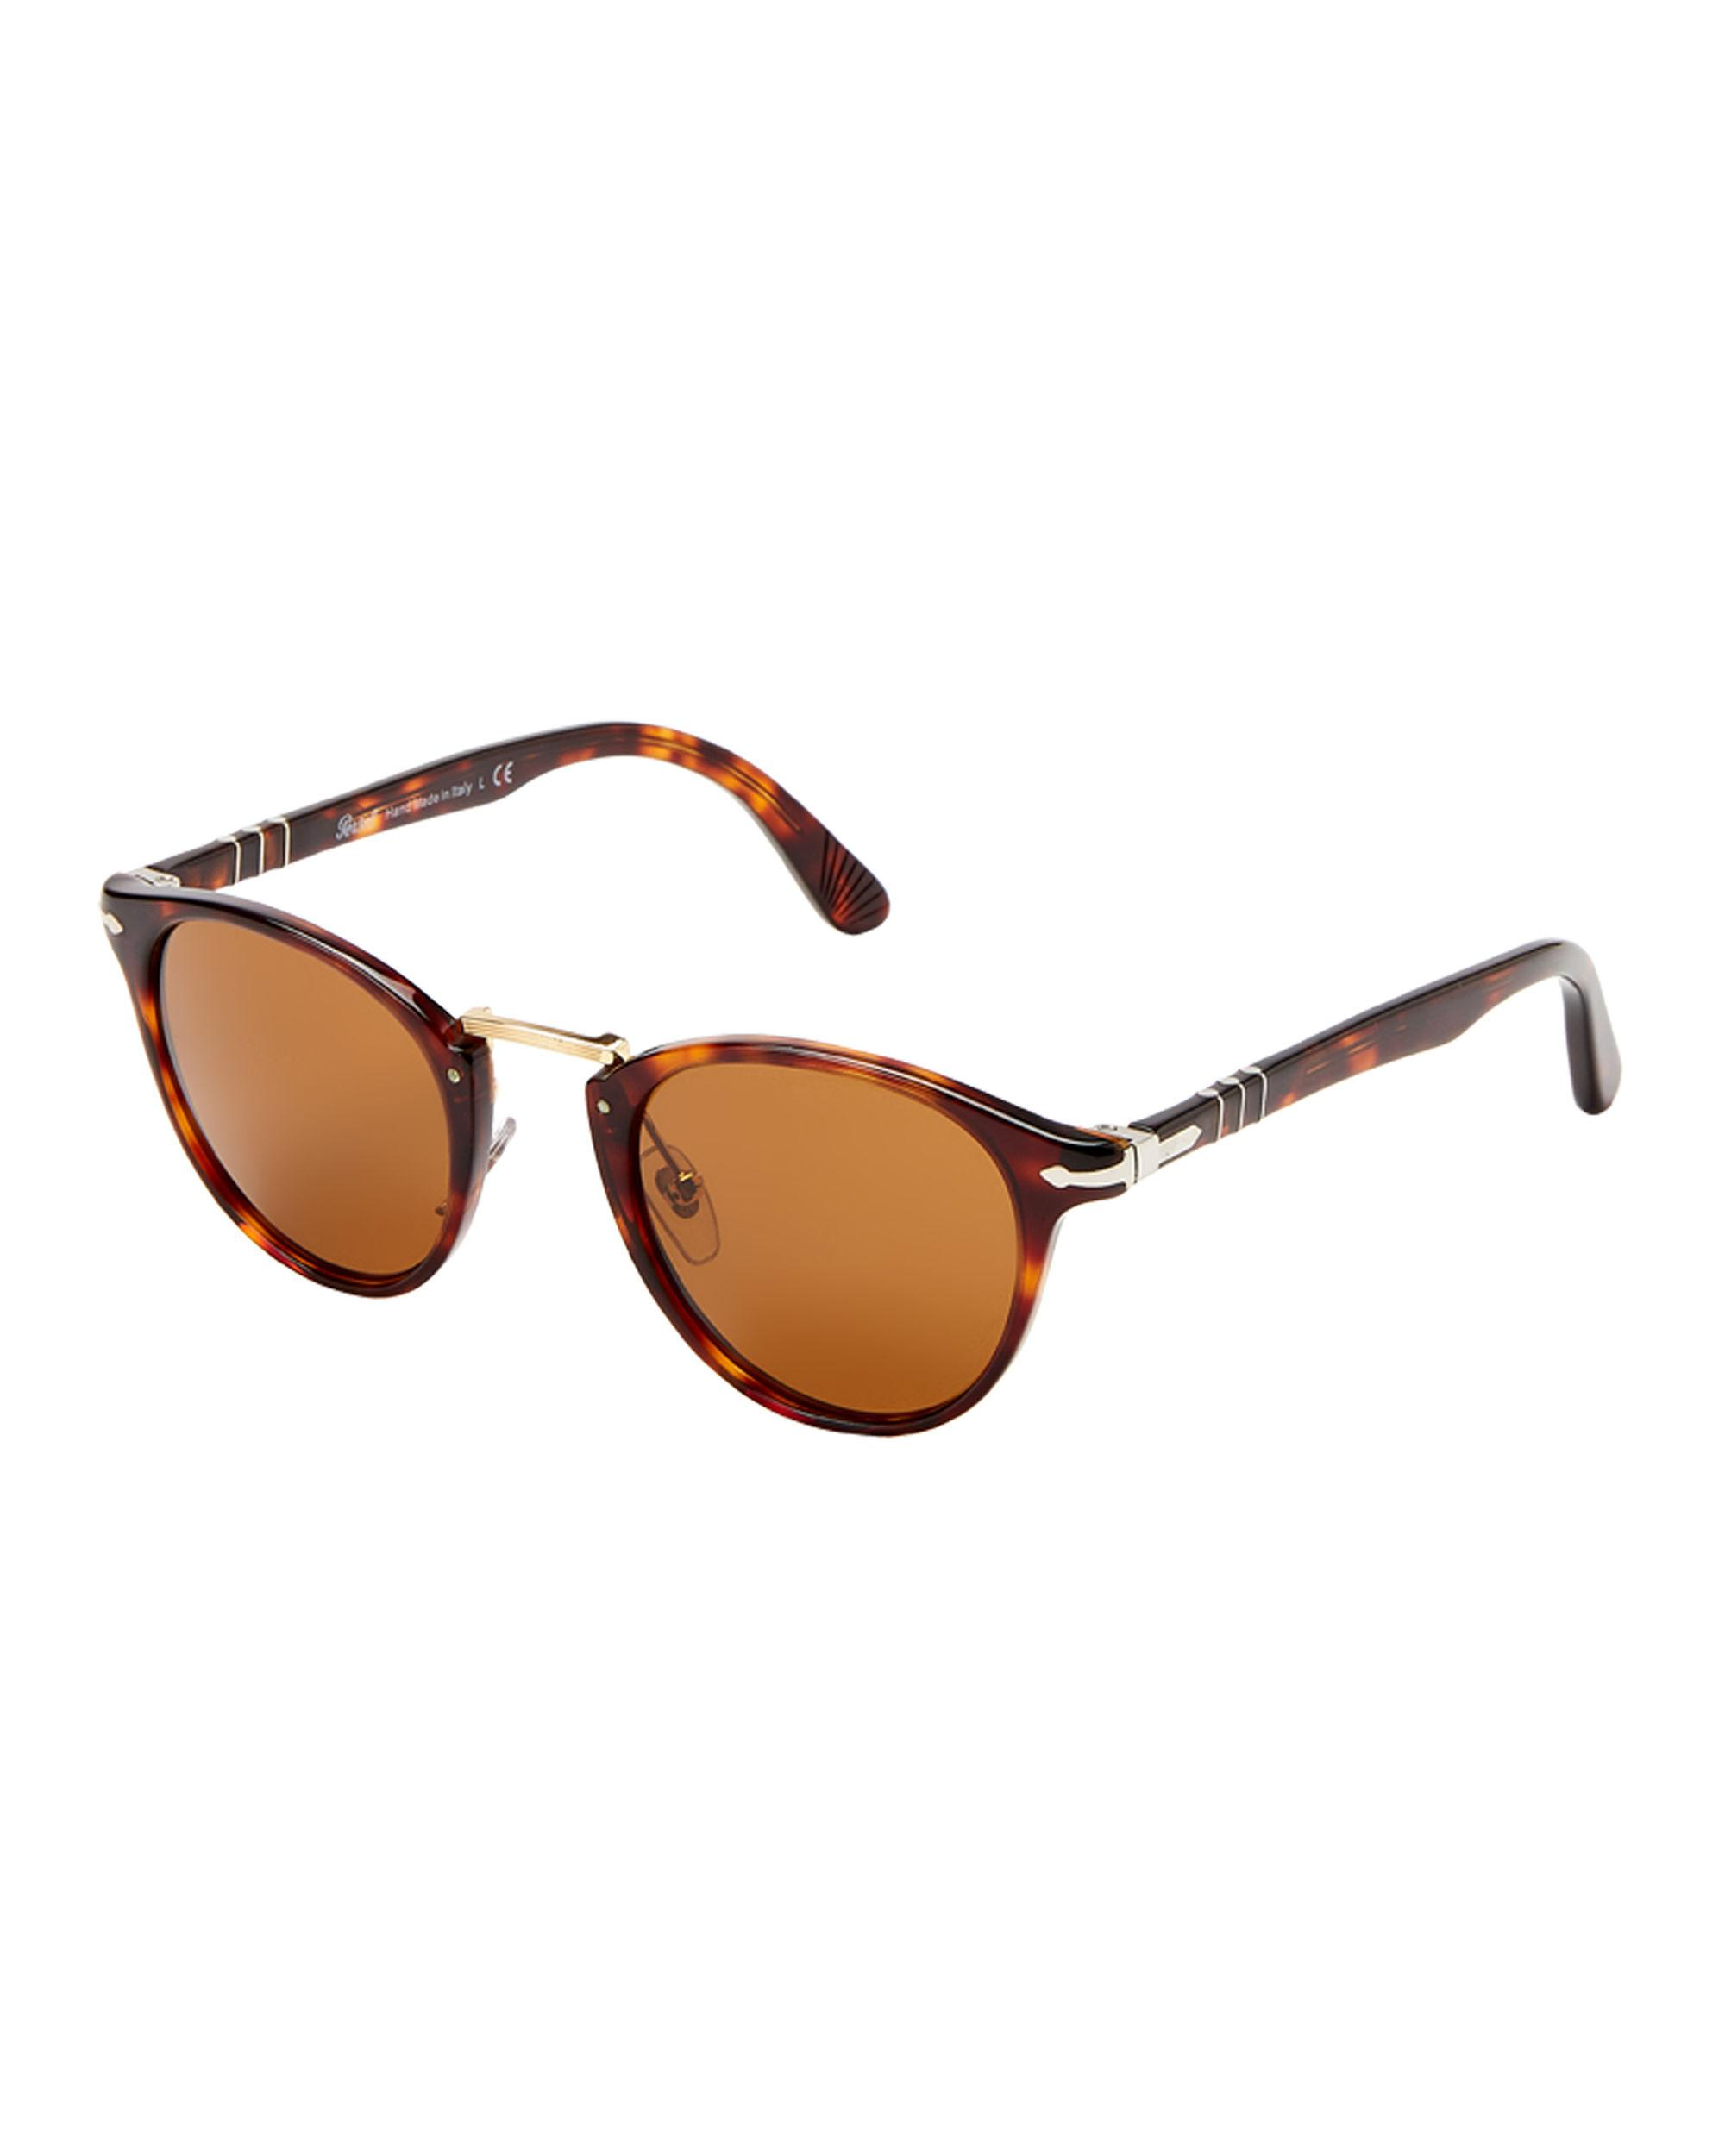 bb1354e95a5aa Lyst - Persol Po3108-s Tortoiseshell-look Round Sunglasses in Brown ...